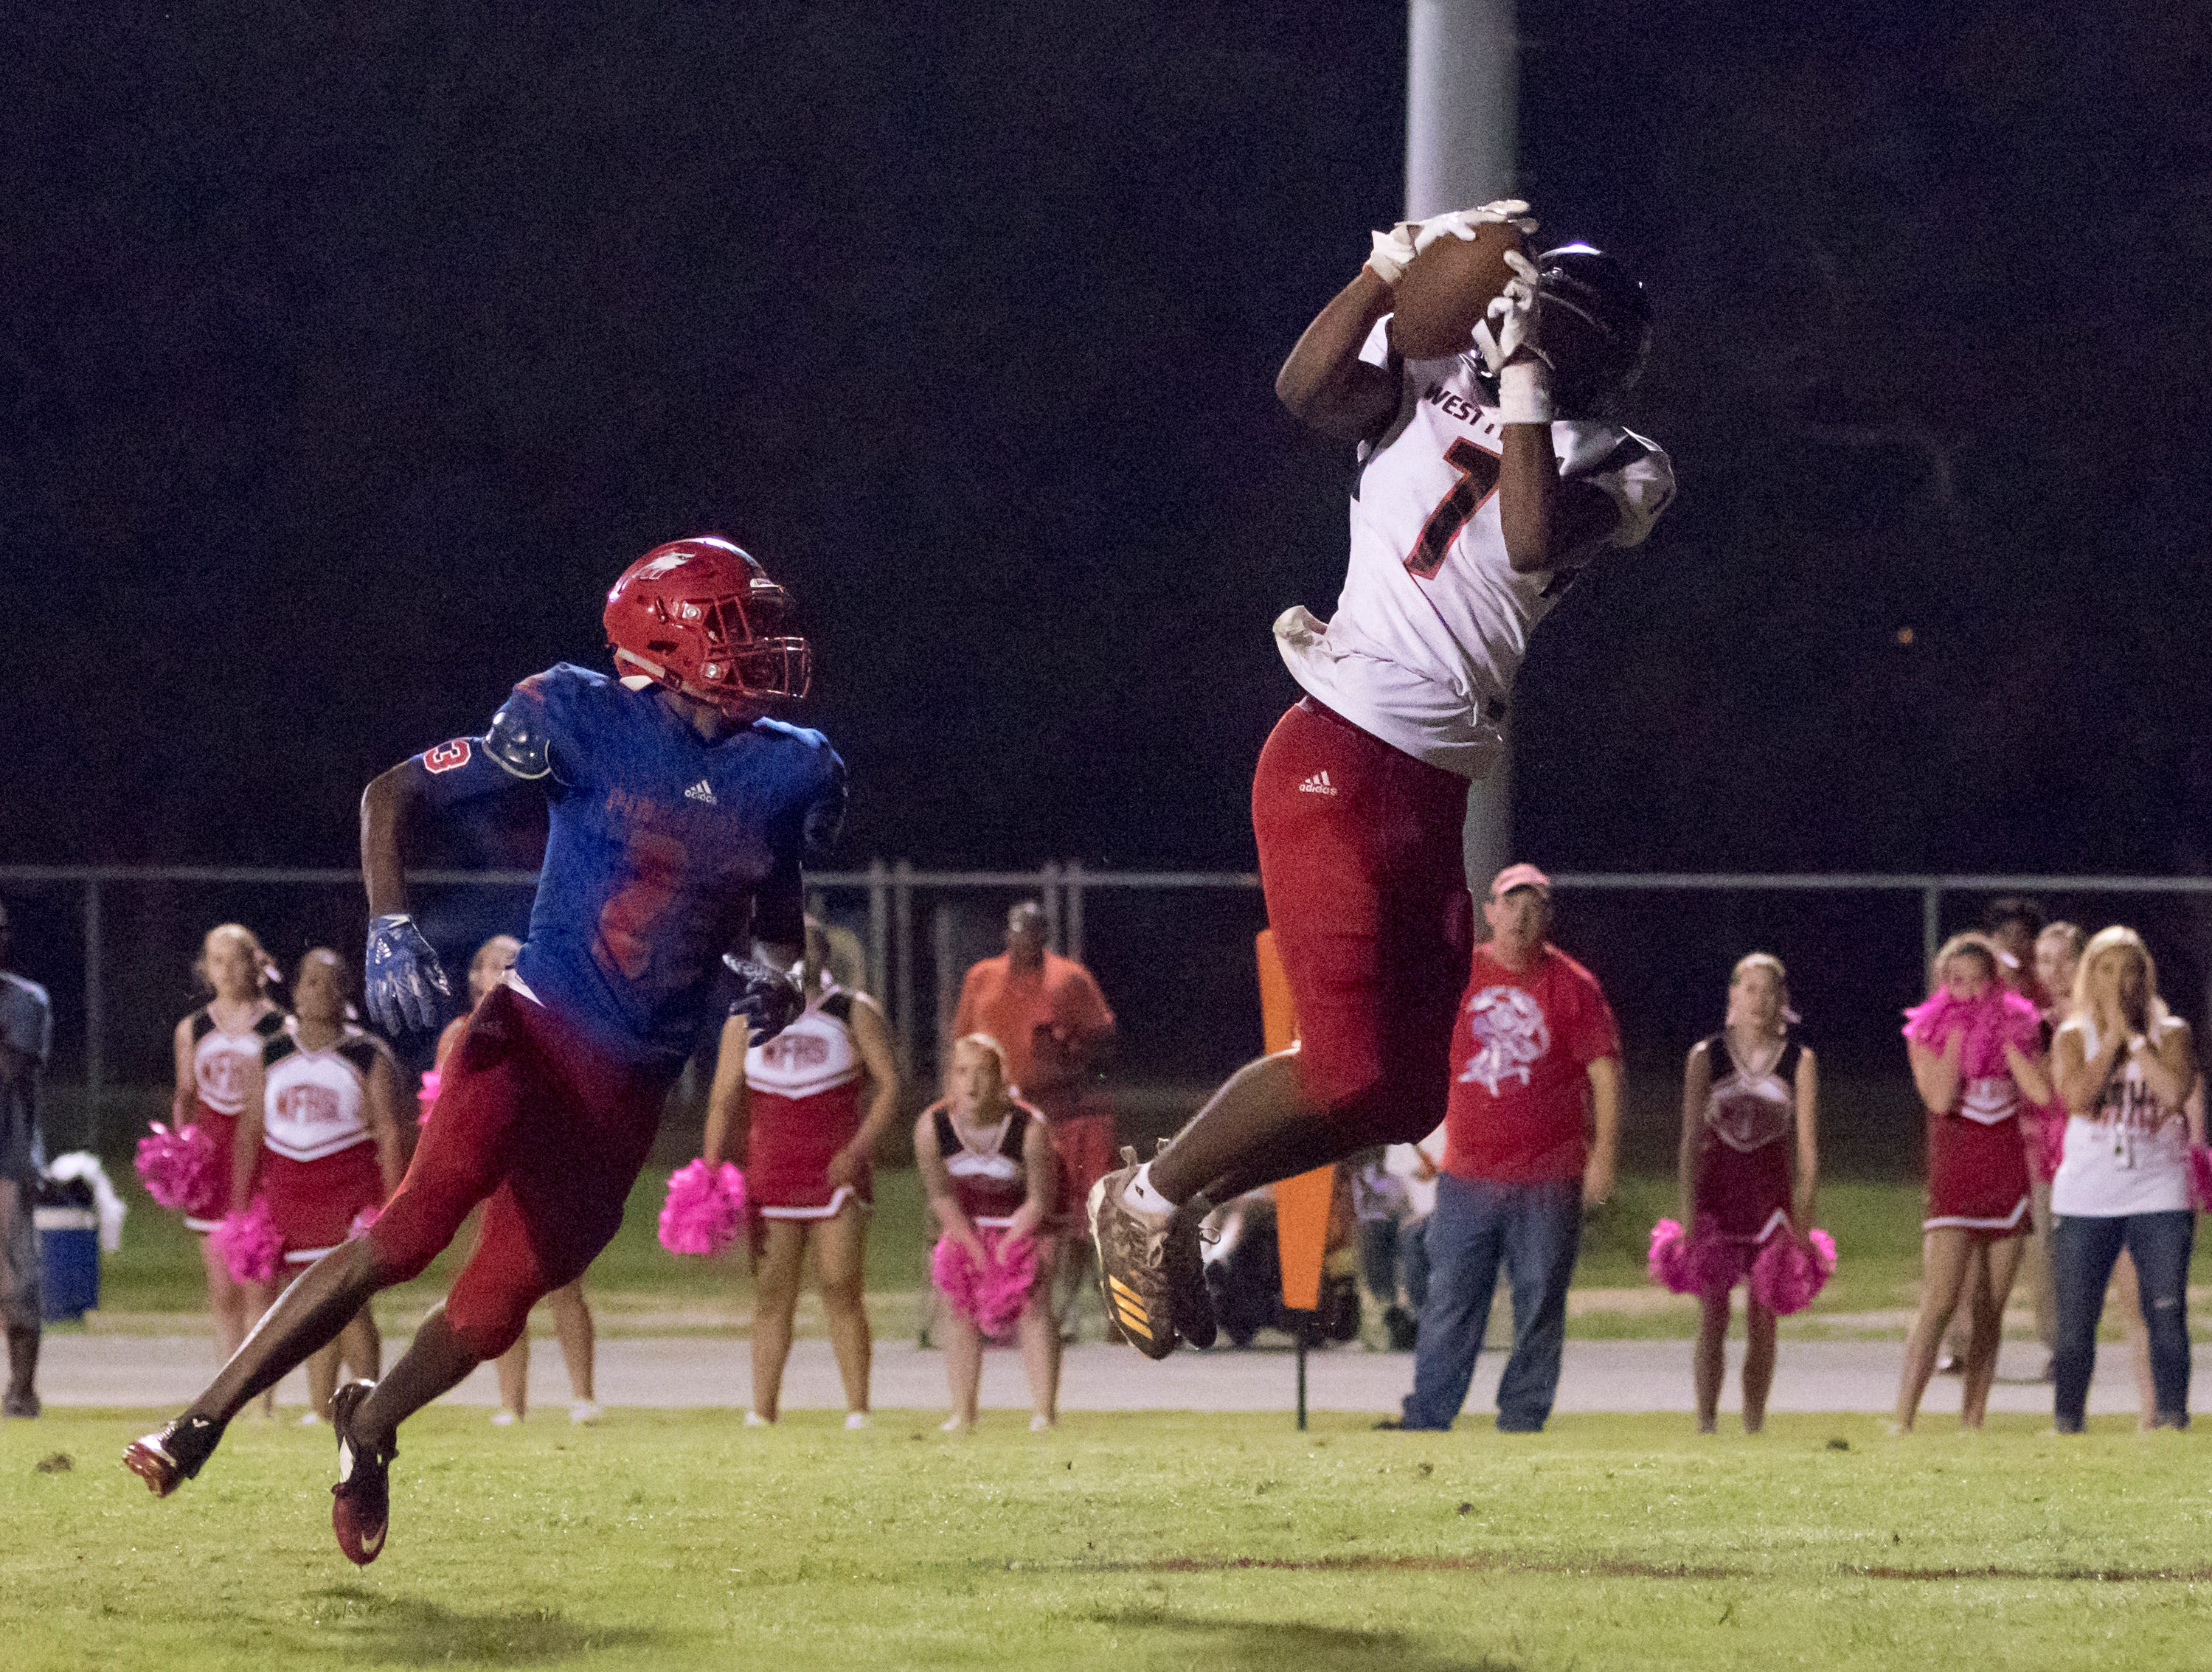 Keion Burrell (7) makes a leaping catch for a touchdown and a 25-24 lead during the West Florida vs Pine Forest football game at Pine Forest High School in Pensacola on Friday, October 5, 2018.